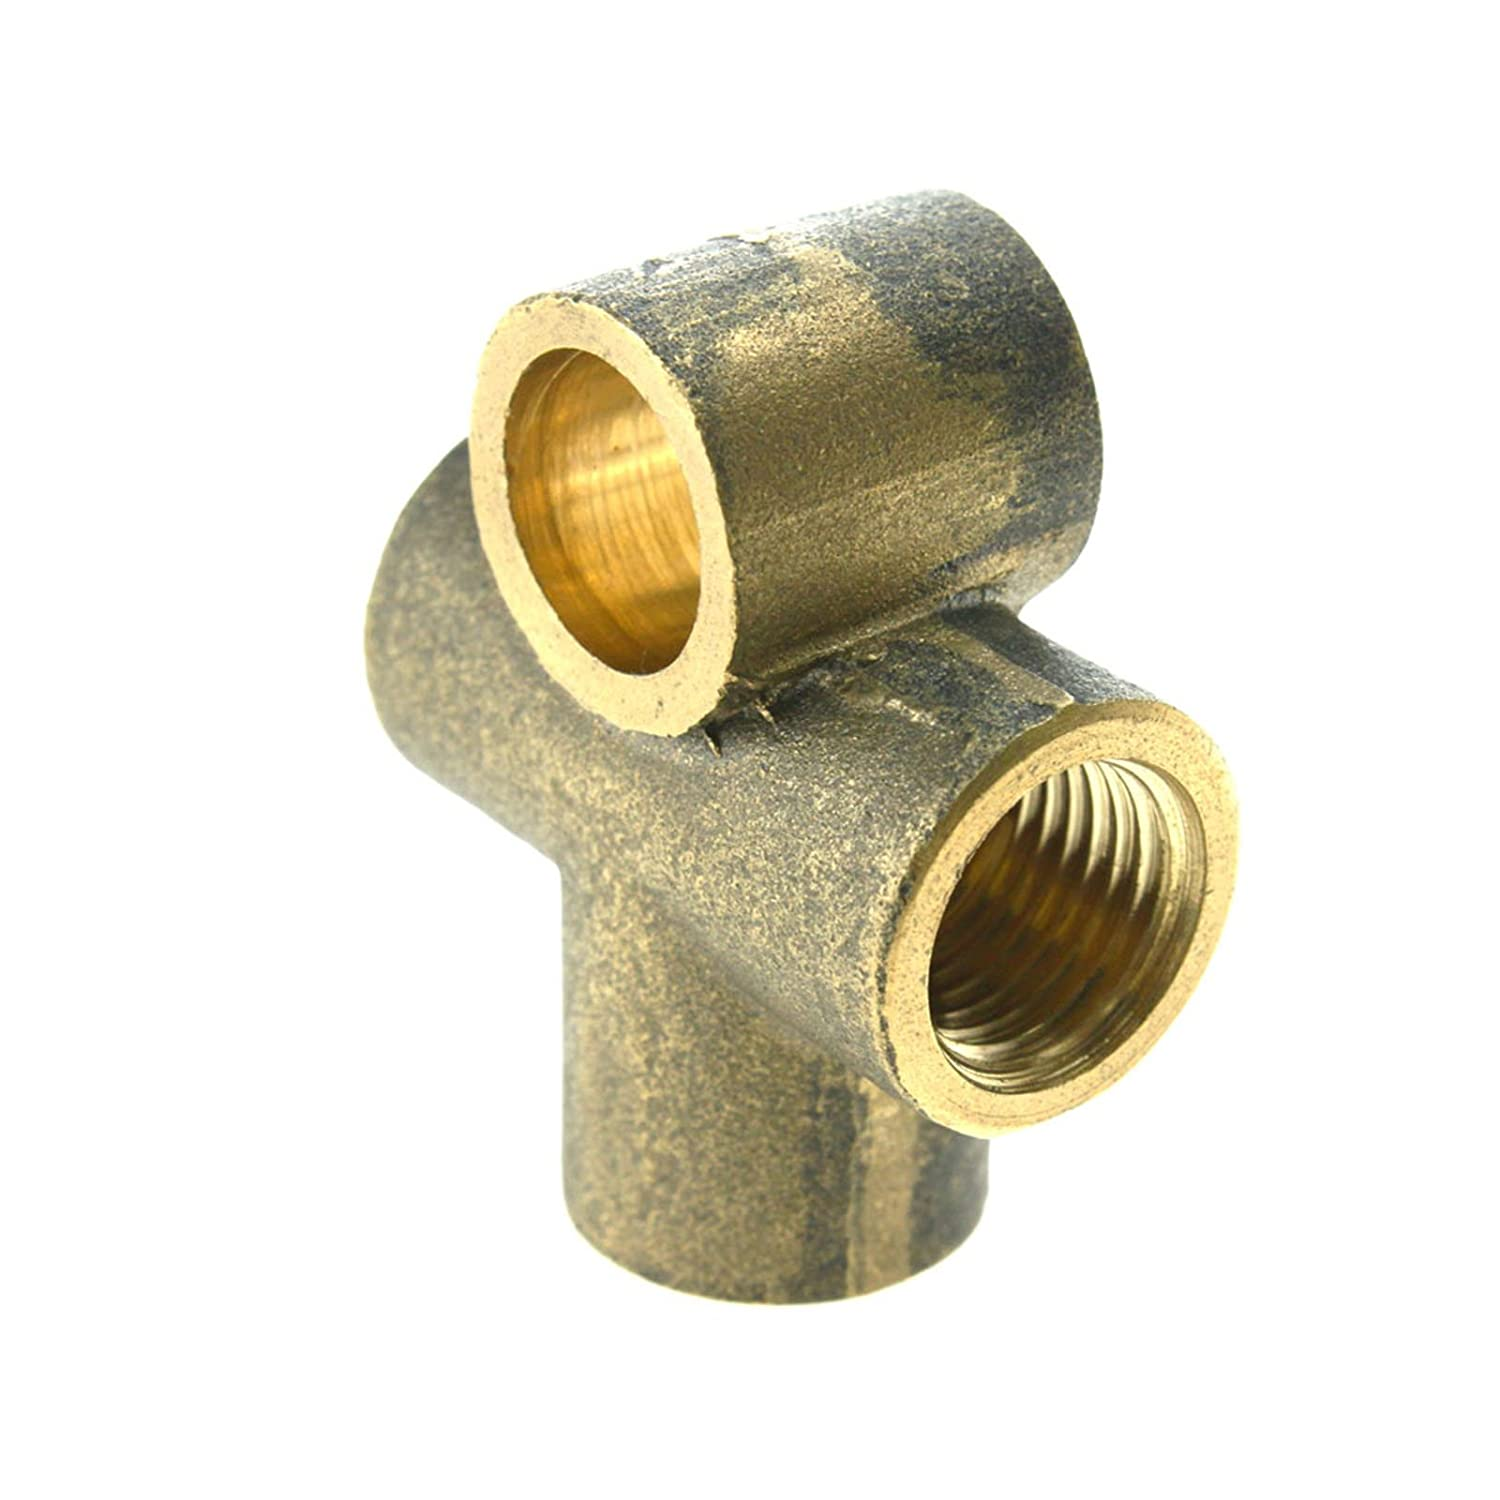 D2D 2xBrass 10MM 3-Way Tee Piece Pipe Brake Clutch M10 T Pipe Connector Female